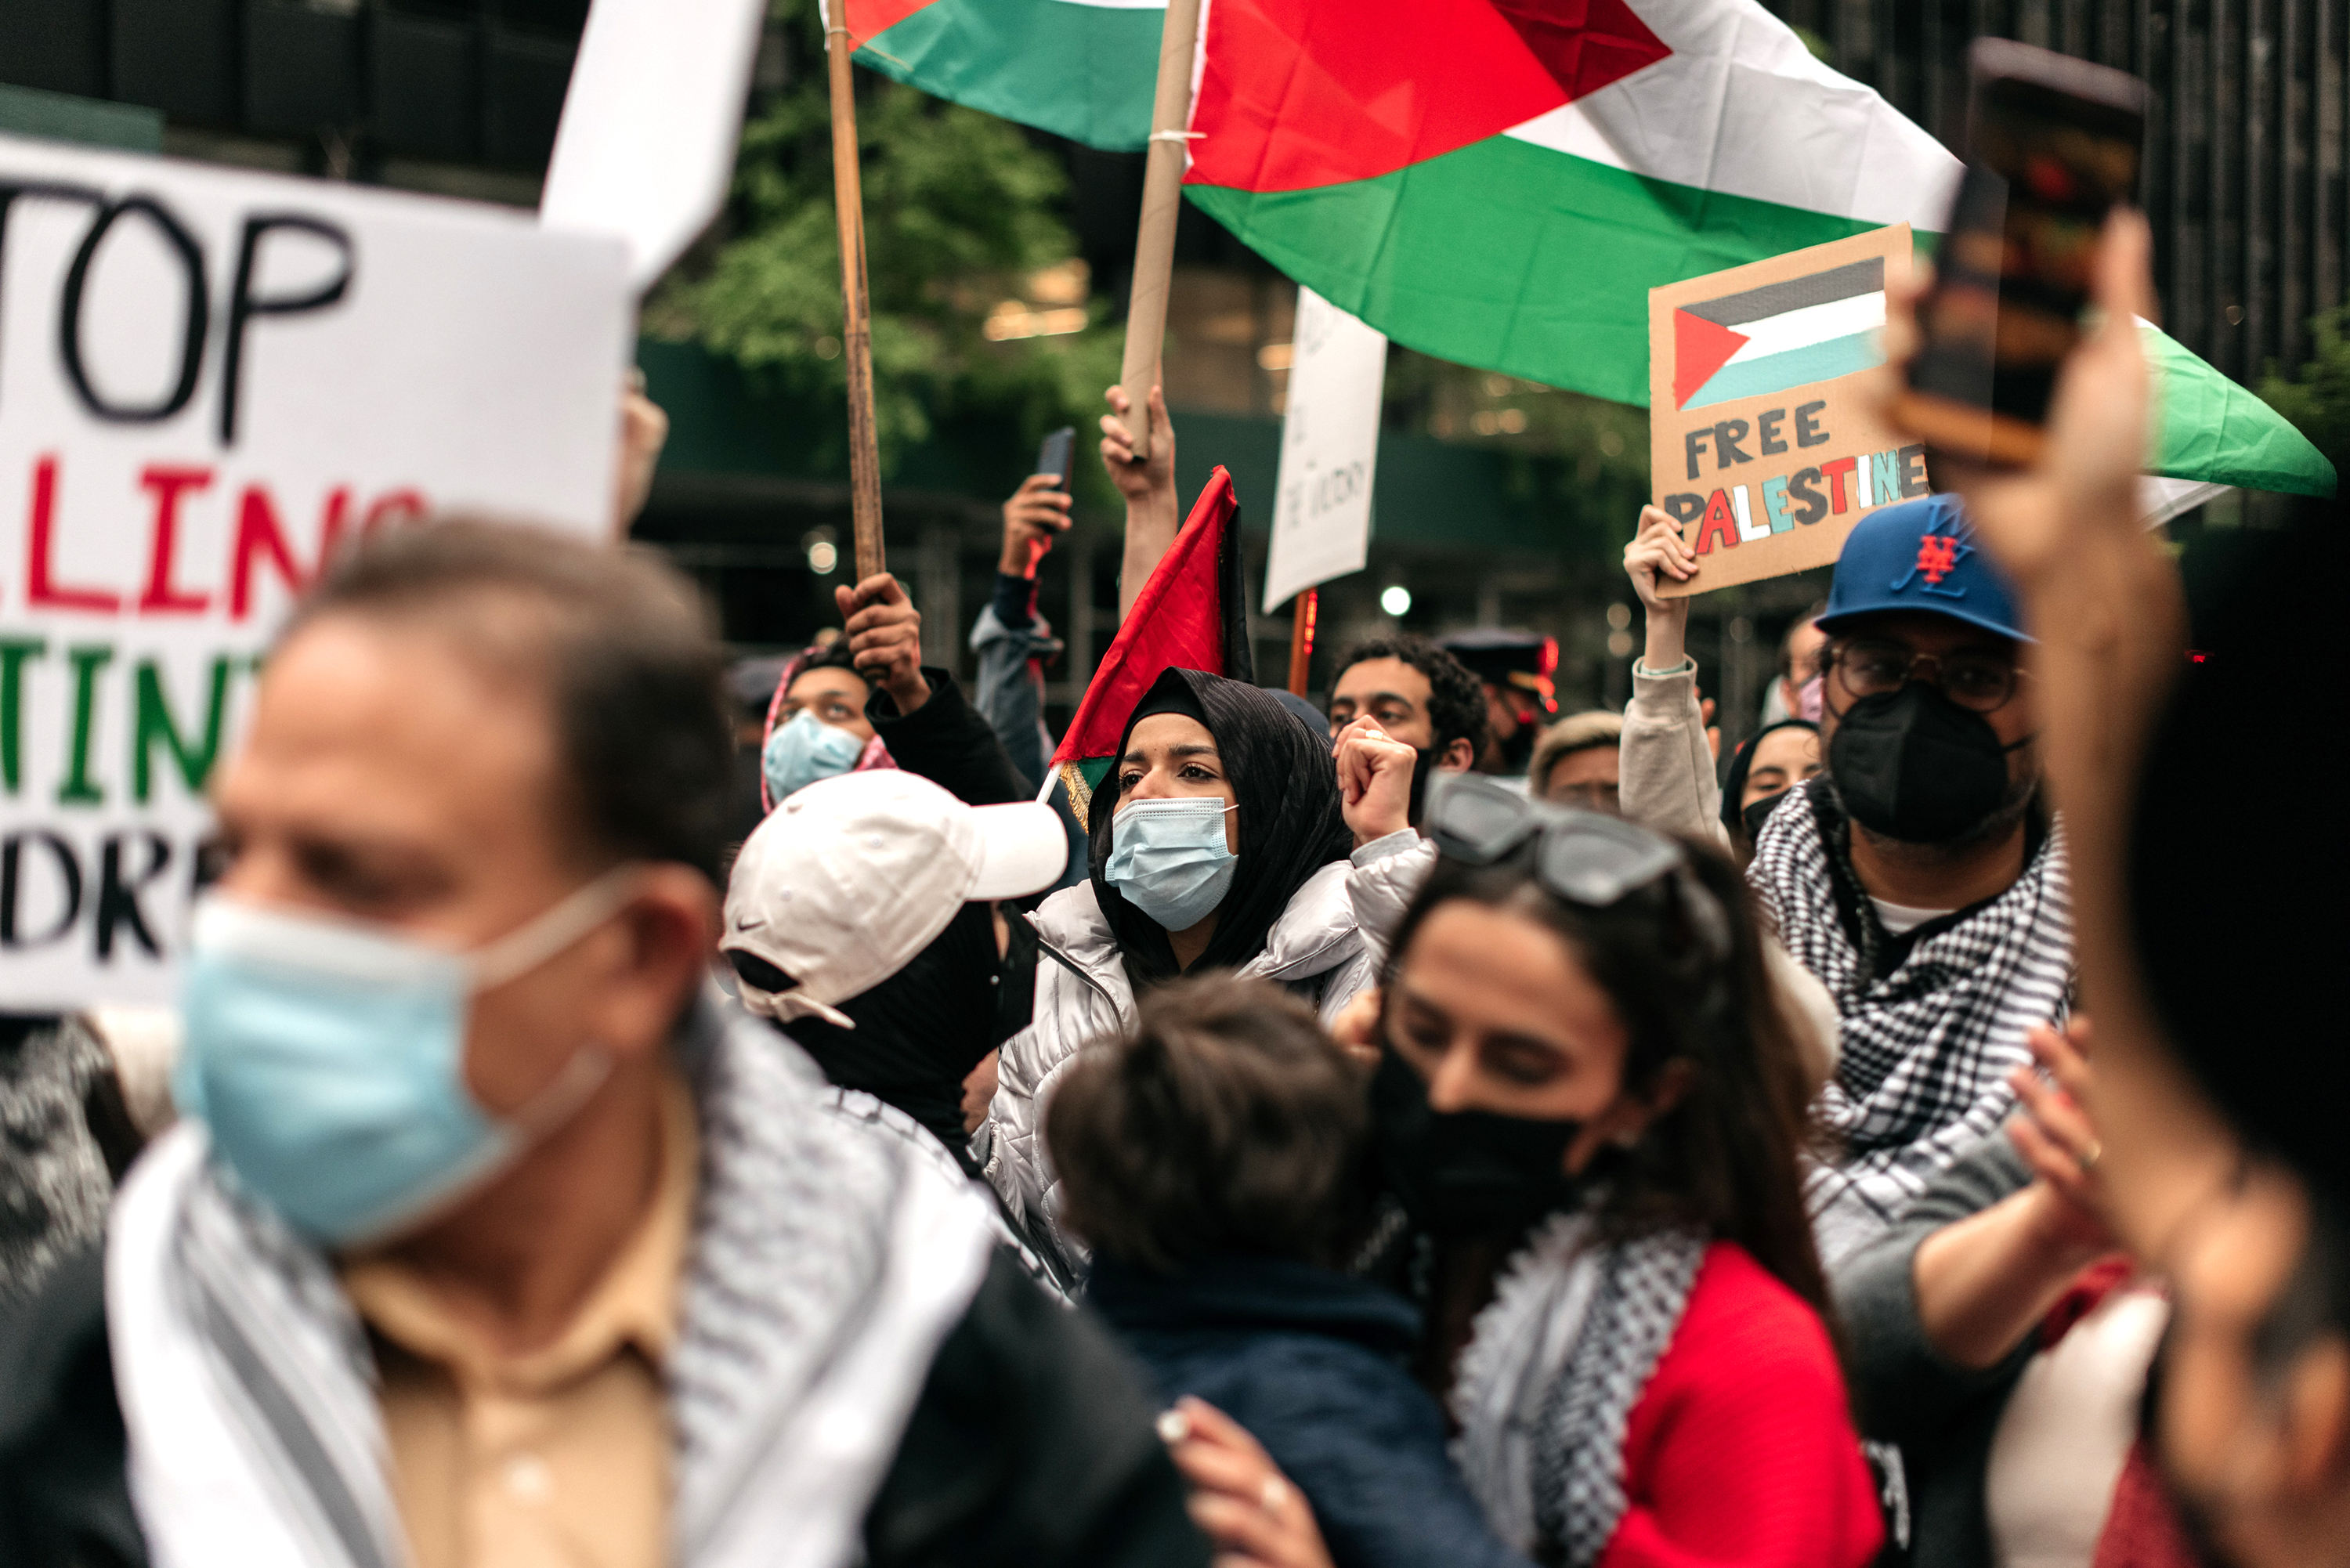 Rally Held Outside Israeli Consulate In NYC In Support Of Palestinians